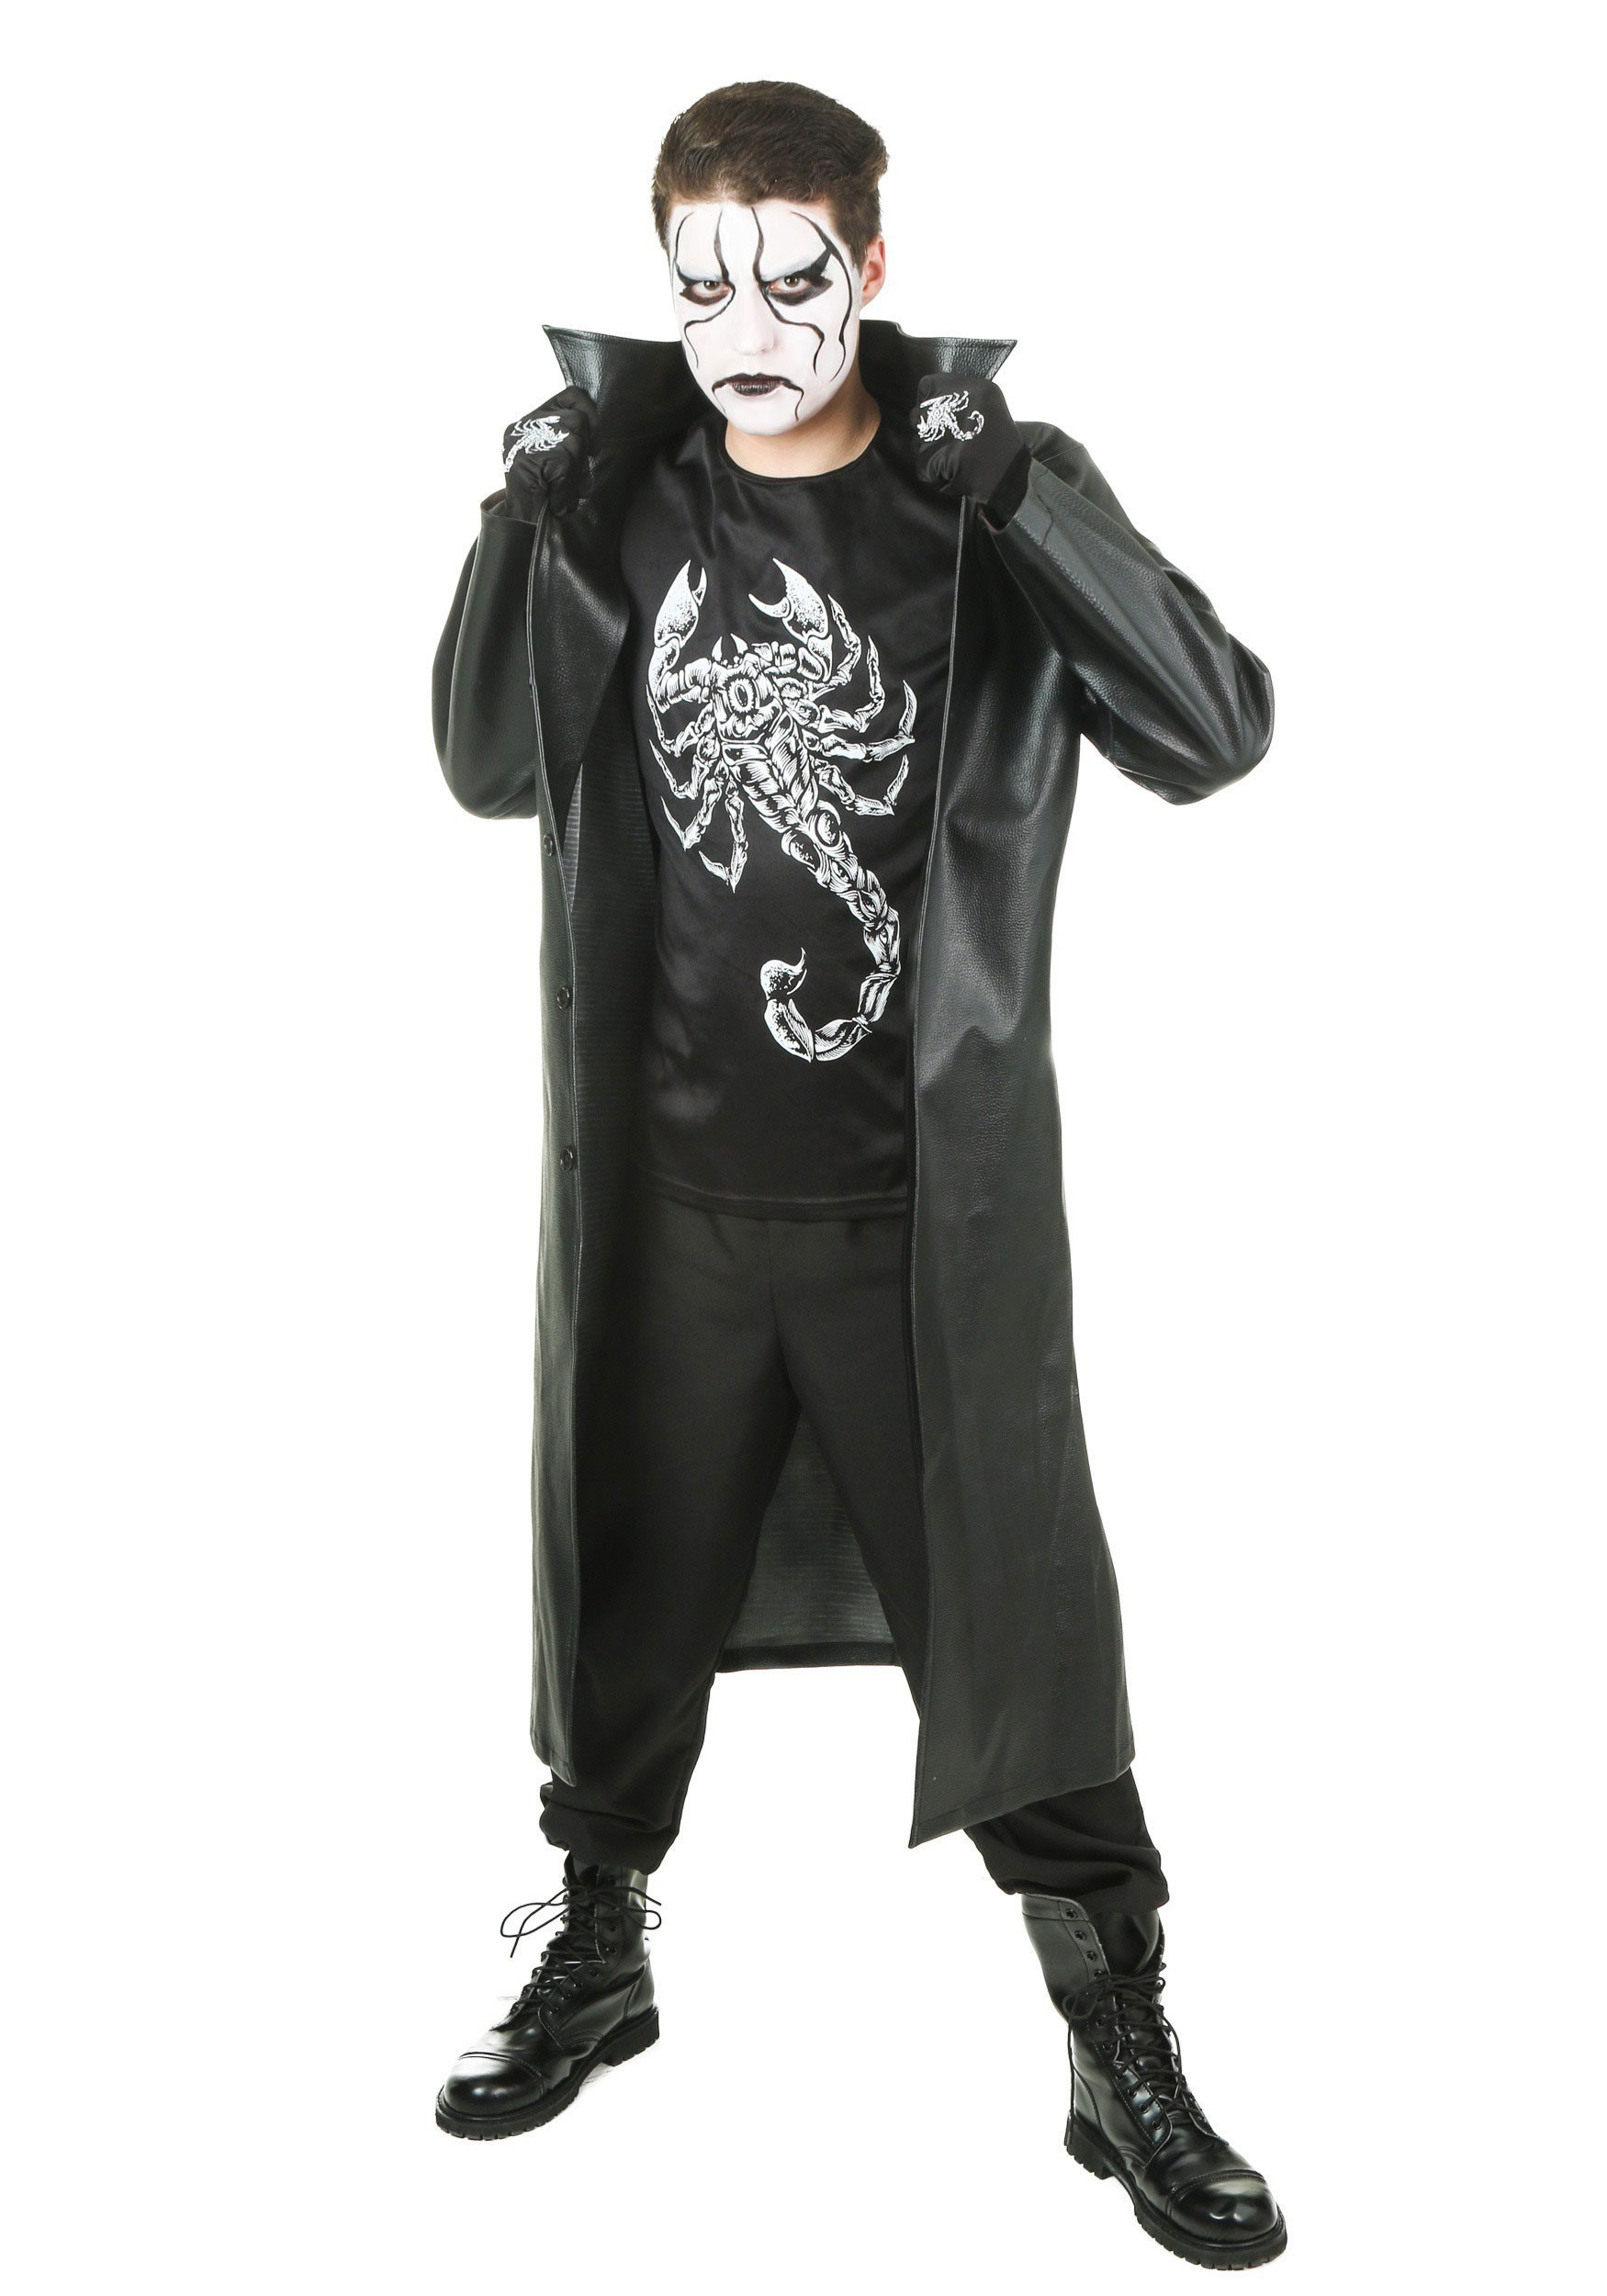 WWE Sting Costume FUN2390AD